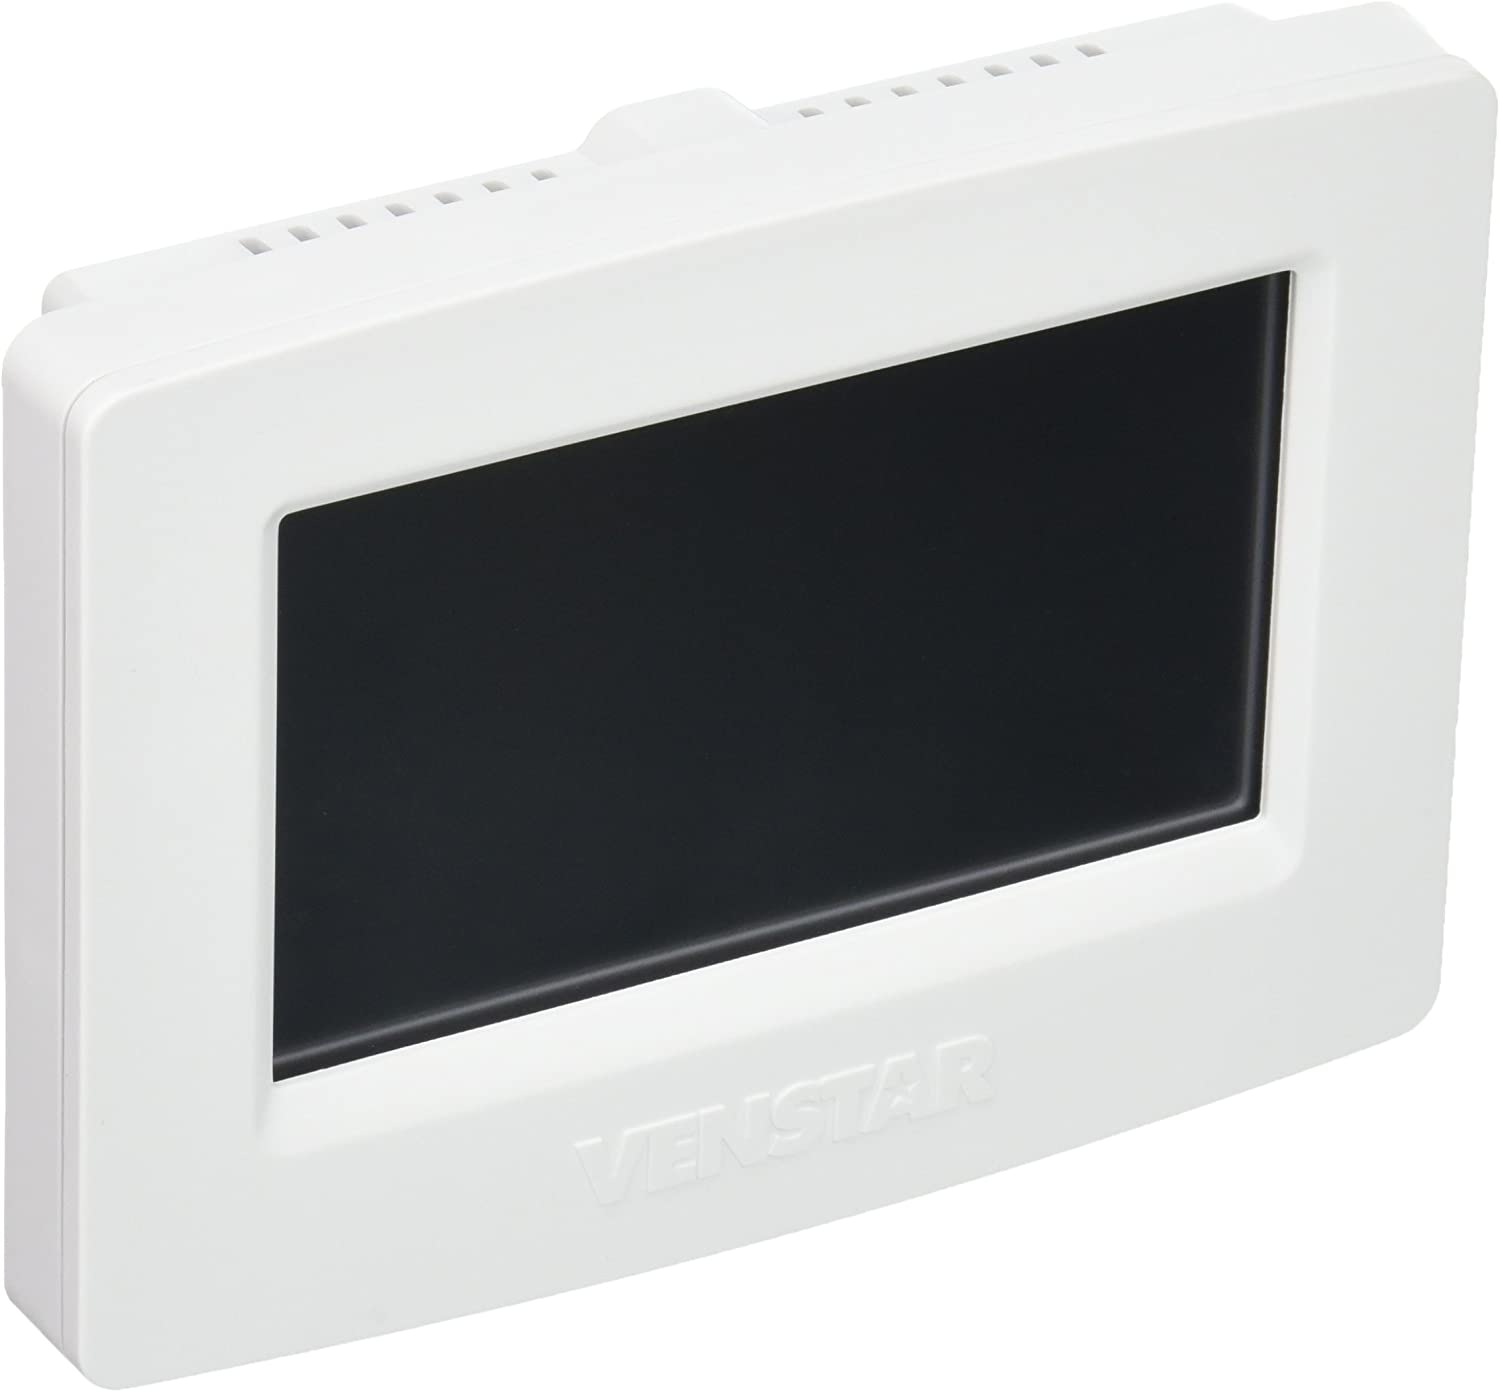 Classic Special sale item Venstar T7900 Programmable Thermostat WiFi